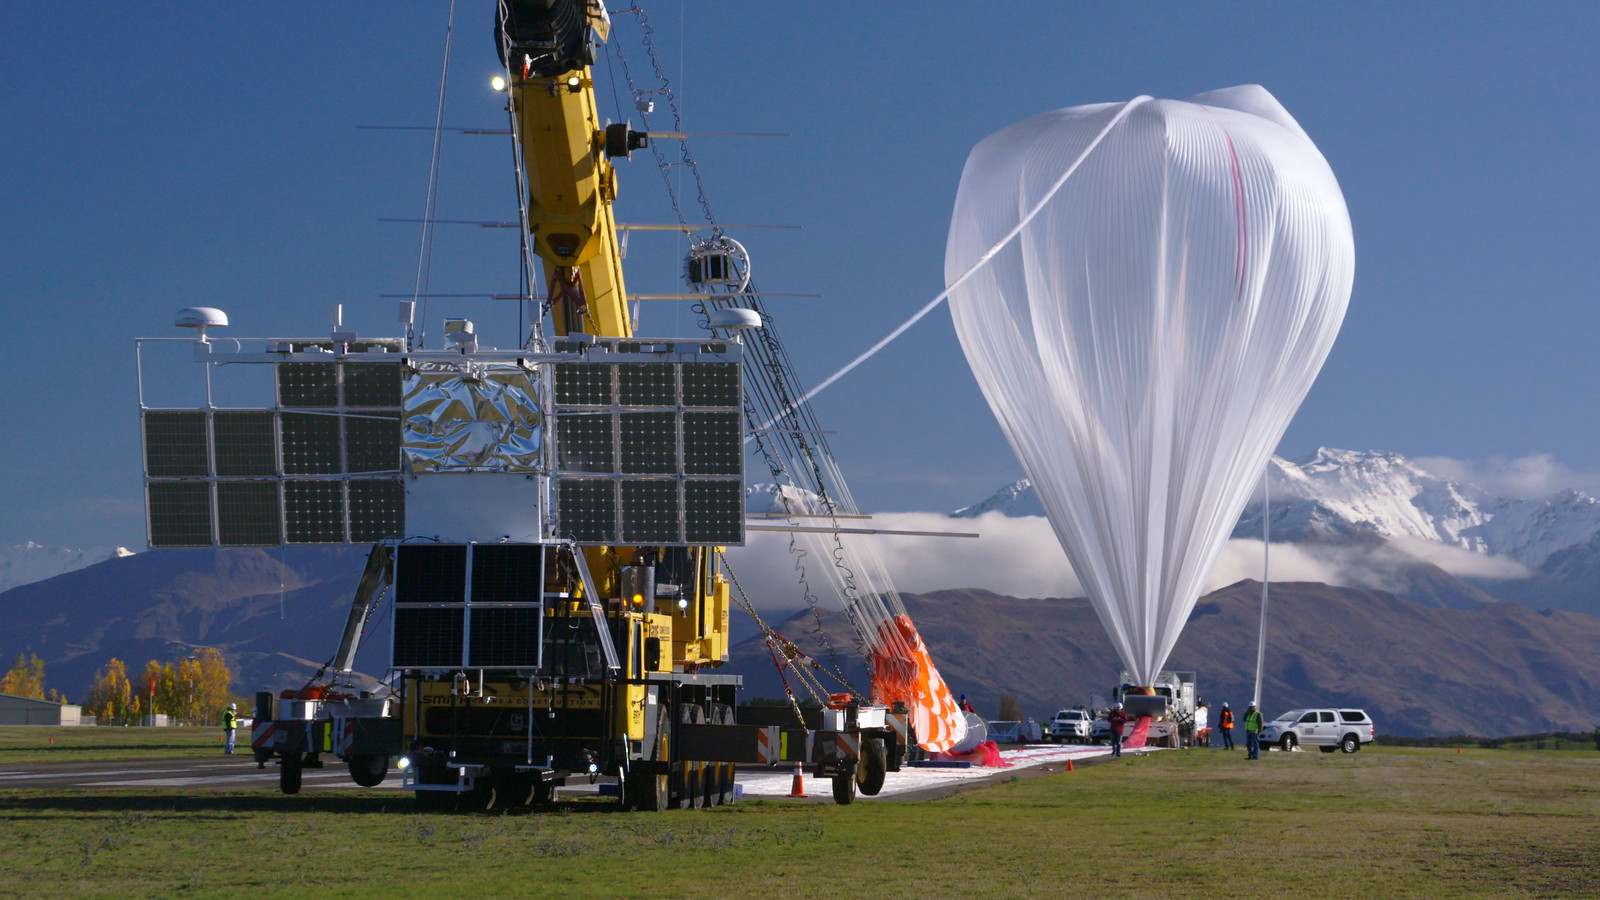 NASA Super Pressure Balloon Begins Globetrotting Journey | by NASA Goddard Photo and Video